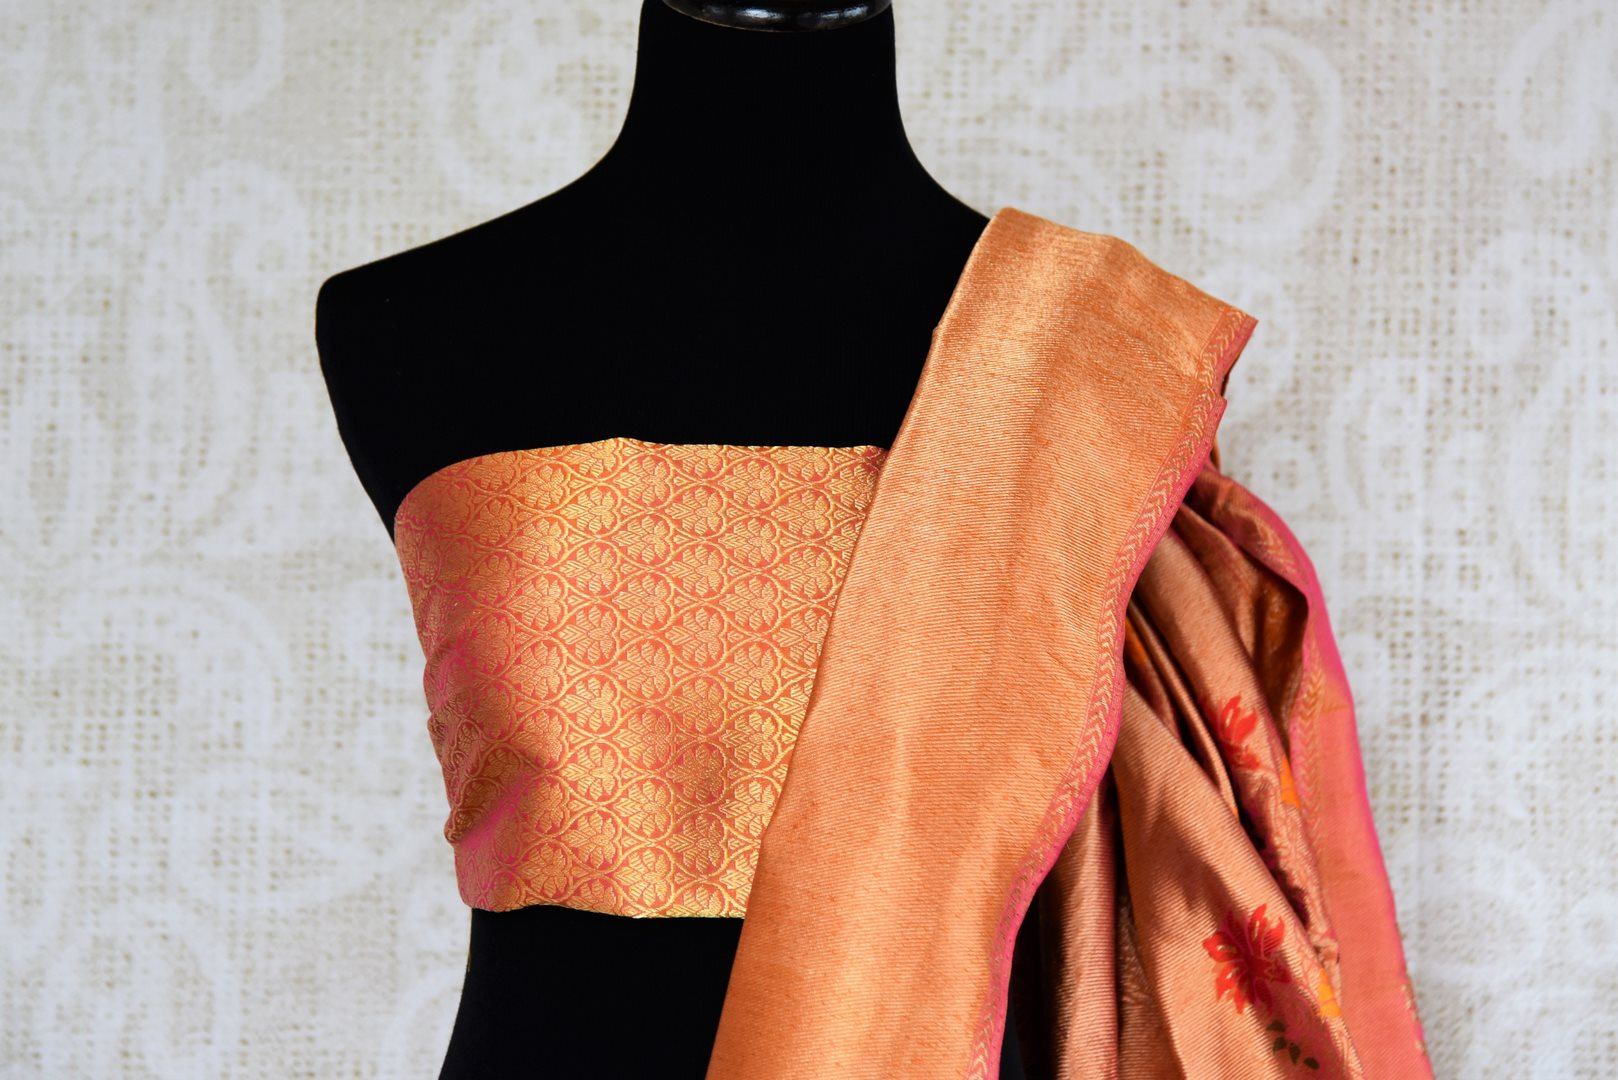 Buy online yellow Banarasi silk saree in USA with zari border. The saree is a rich drape for a traditional wedding look. If you are looking for Indian handloom sarees, Banarasi silk saris in USA, then Pure Elegance is the place for you. Shop online or visit our exclusive fashion store in USA.-blouse pallu